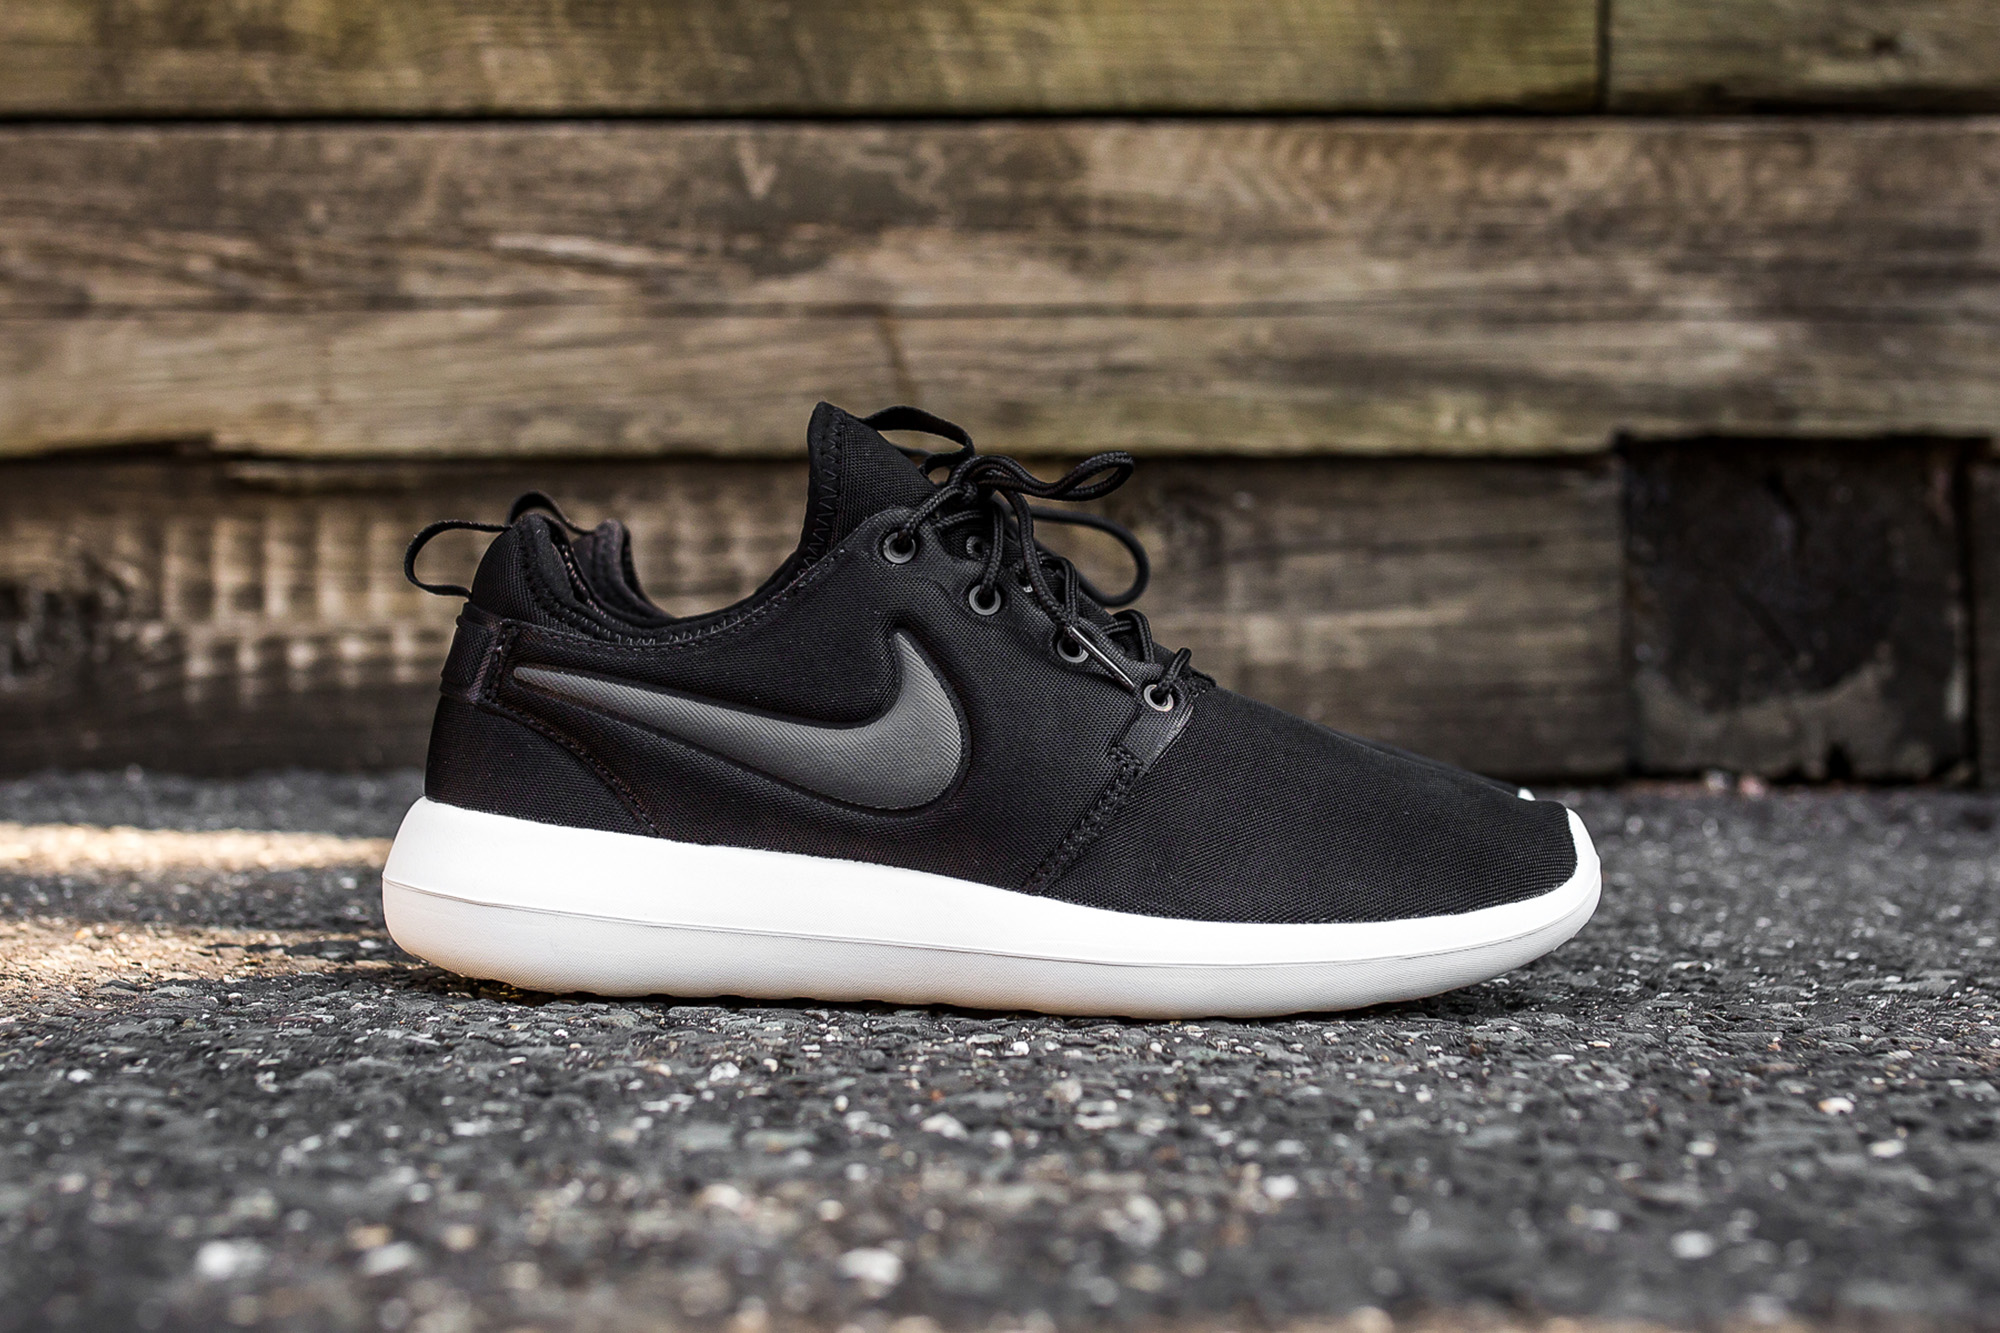 nike roshe run packer shoes. Black Bedroom Furniture Sets. Home Design Ideas